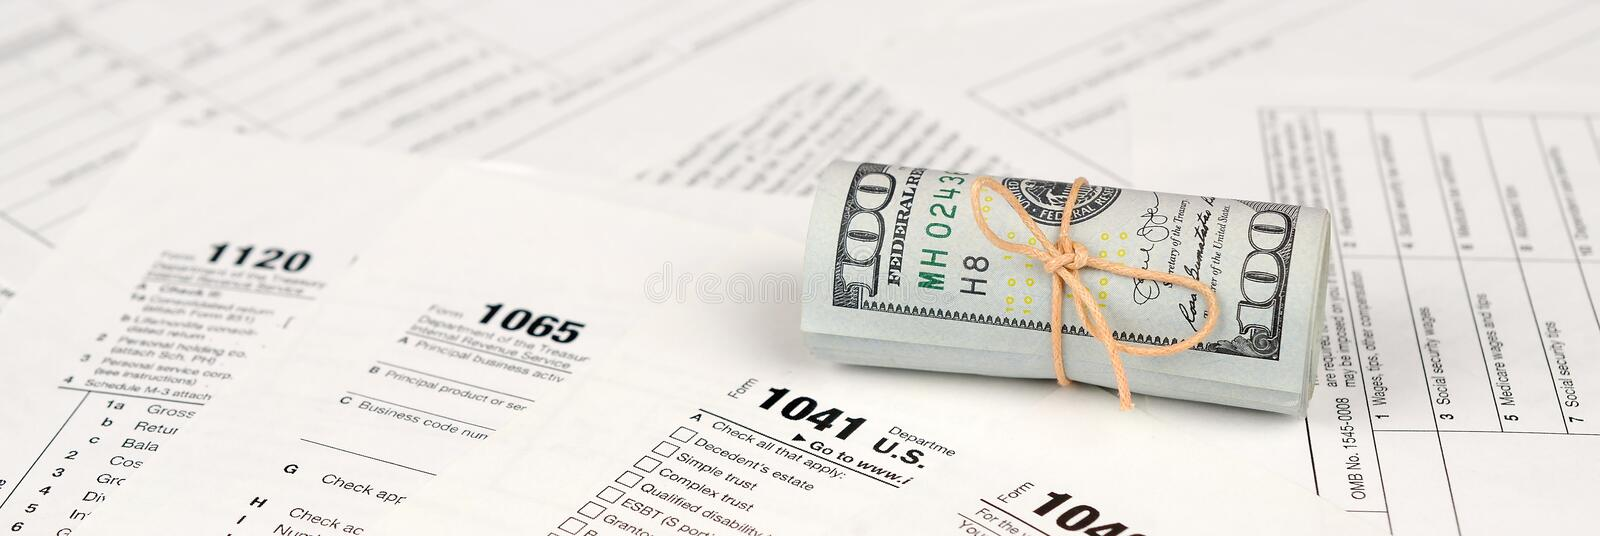 Tax forms lies near roll of hundred dollar bills. Income tax return. Time to pay taxes concept. 1040 1041 1120 and 1065 empty blank forms royalty free stock image